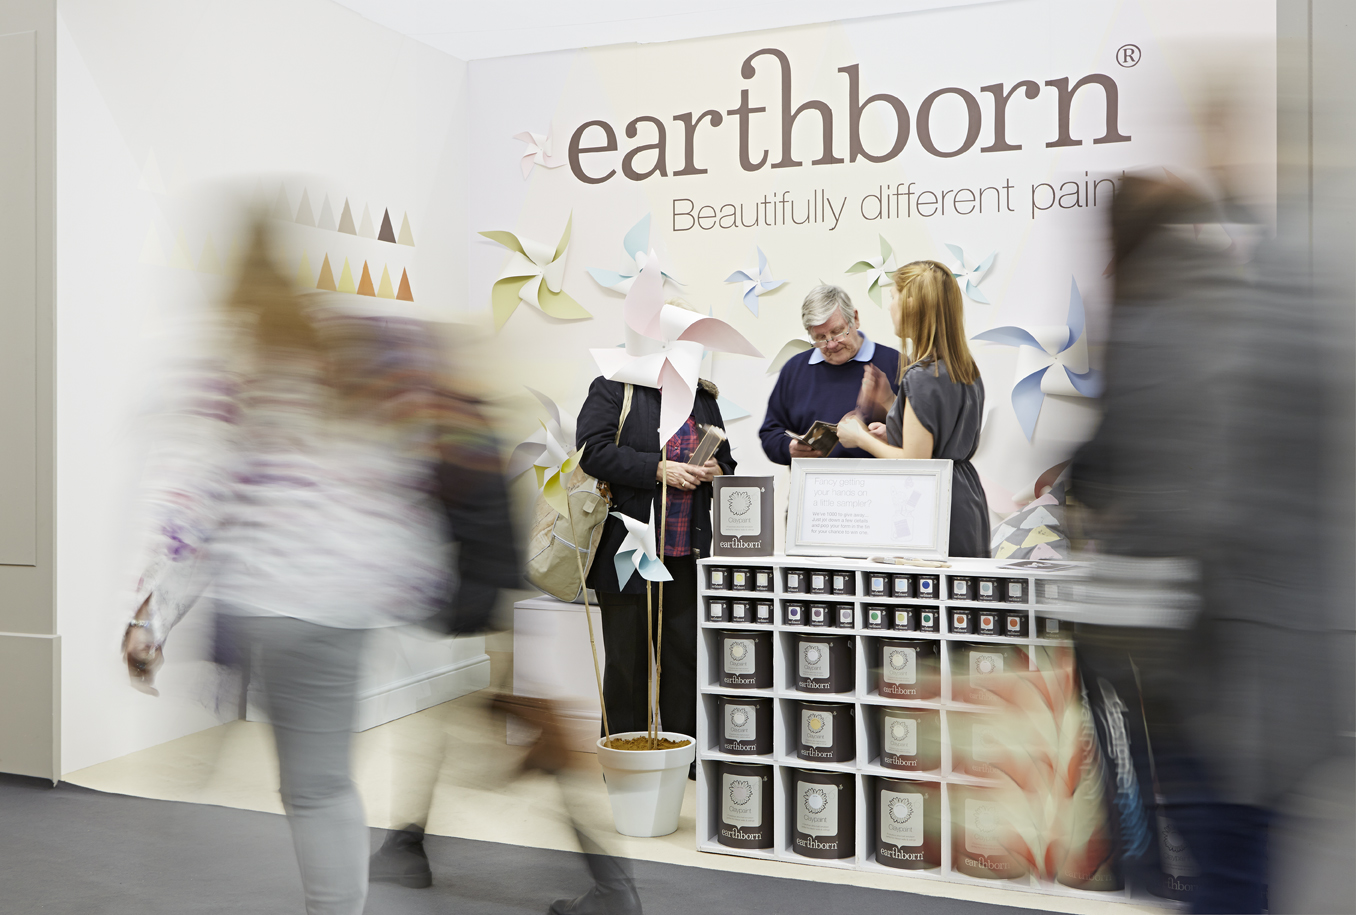 earthborn-ideal-home21204